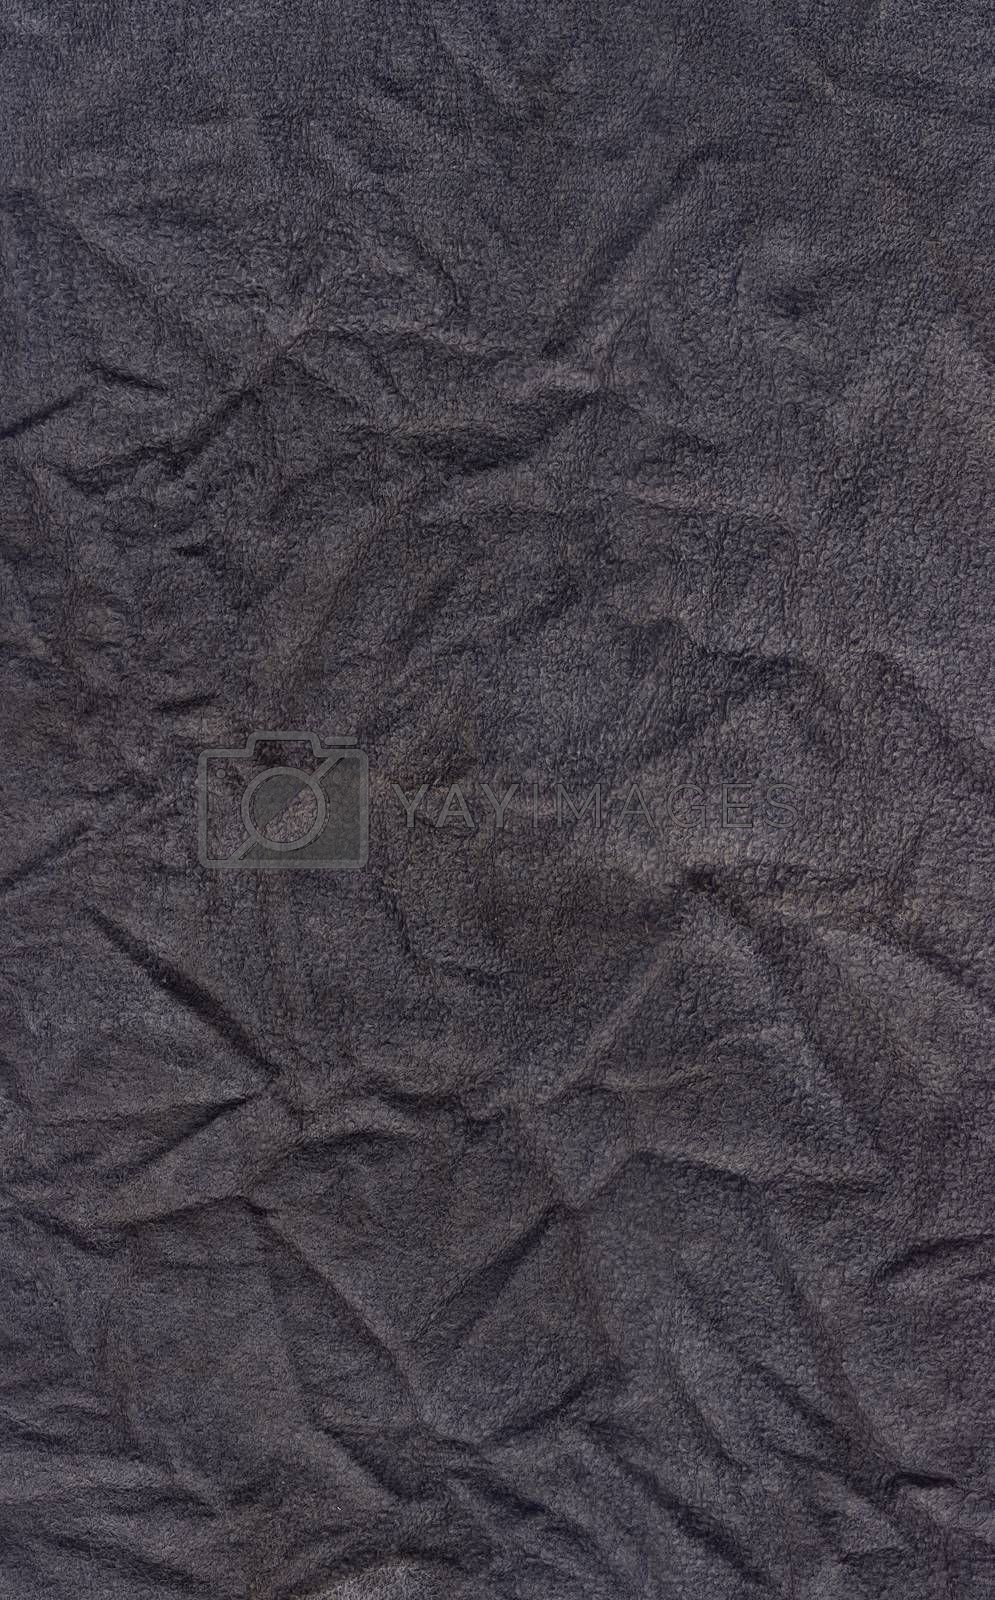 Creased Dirty Fabric Texture